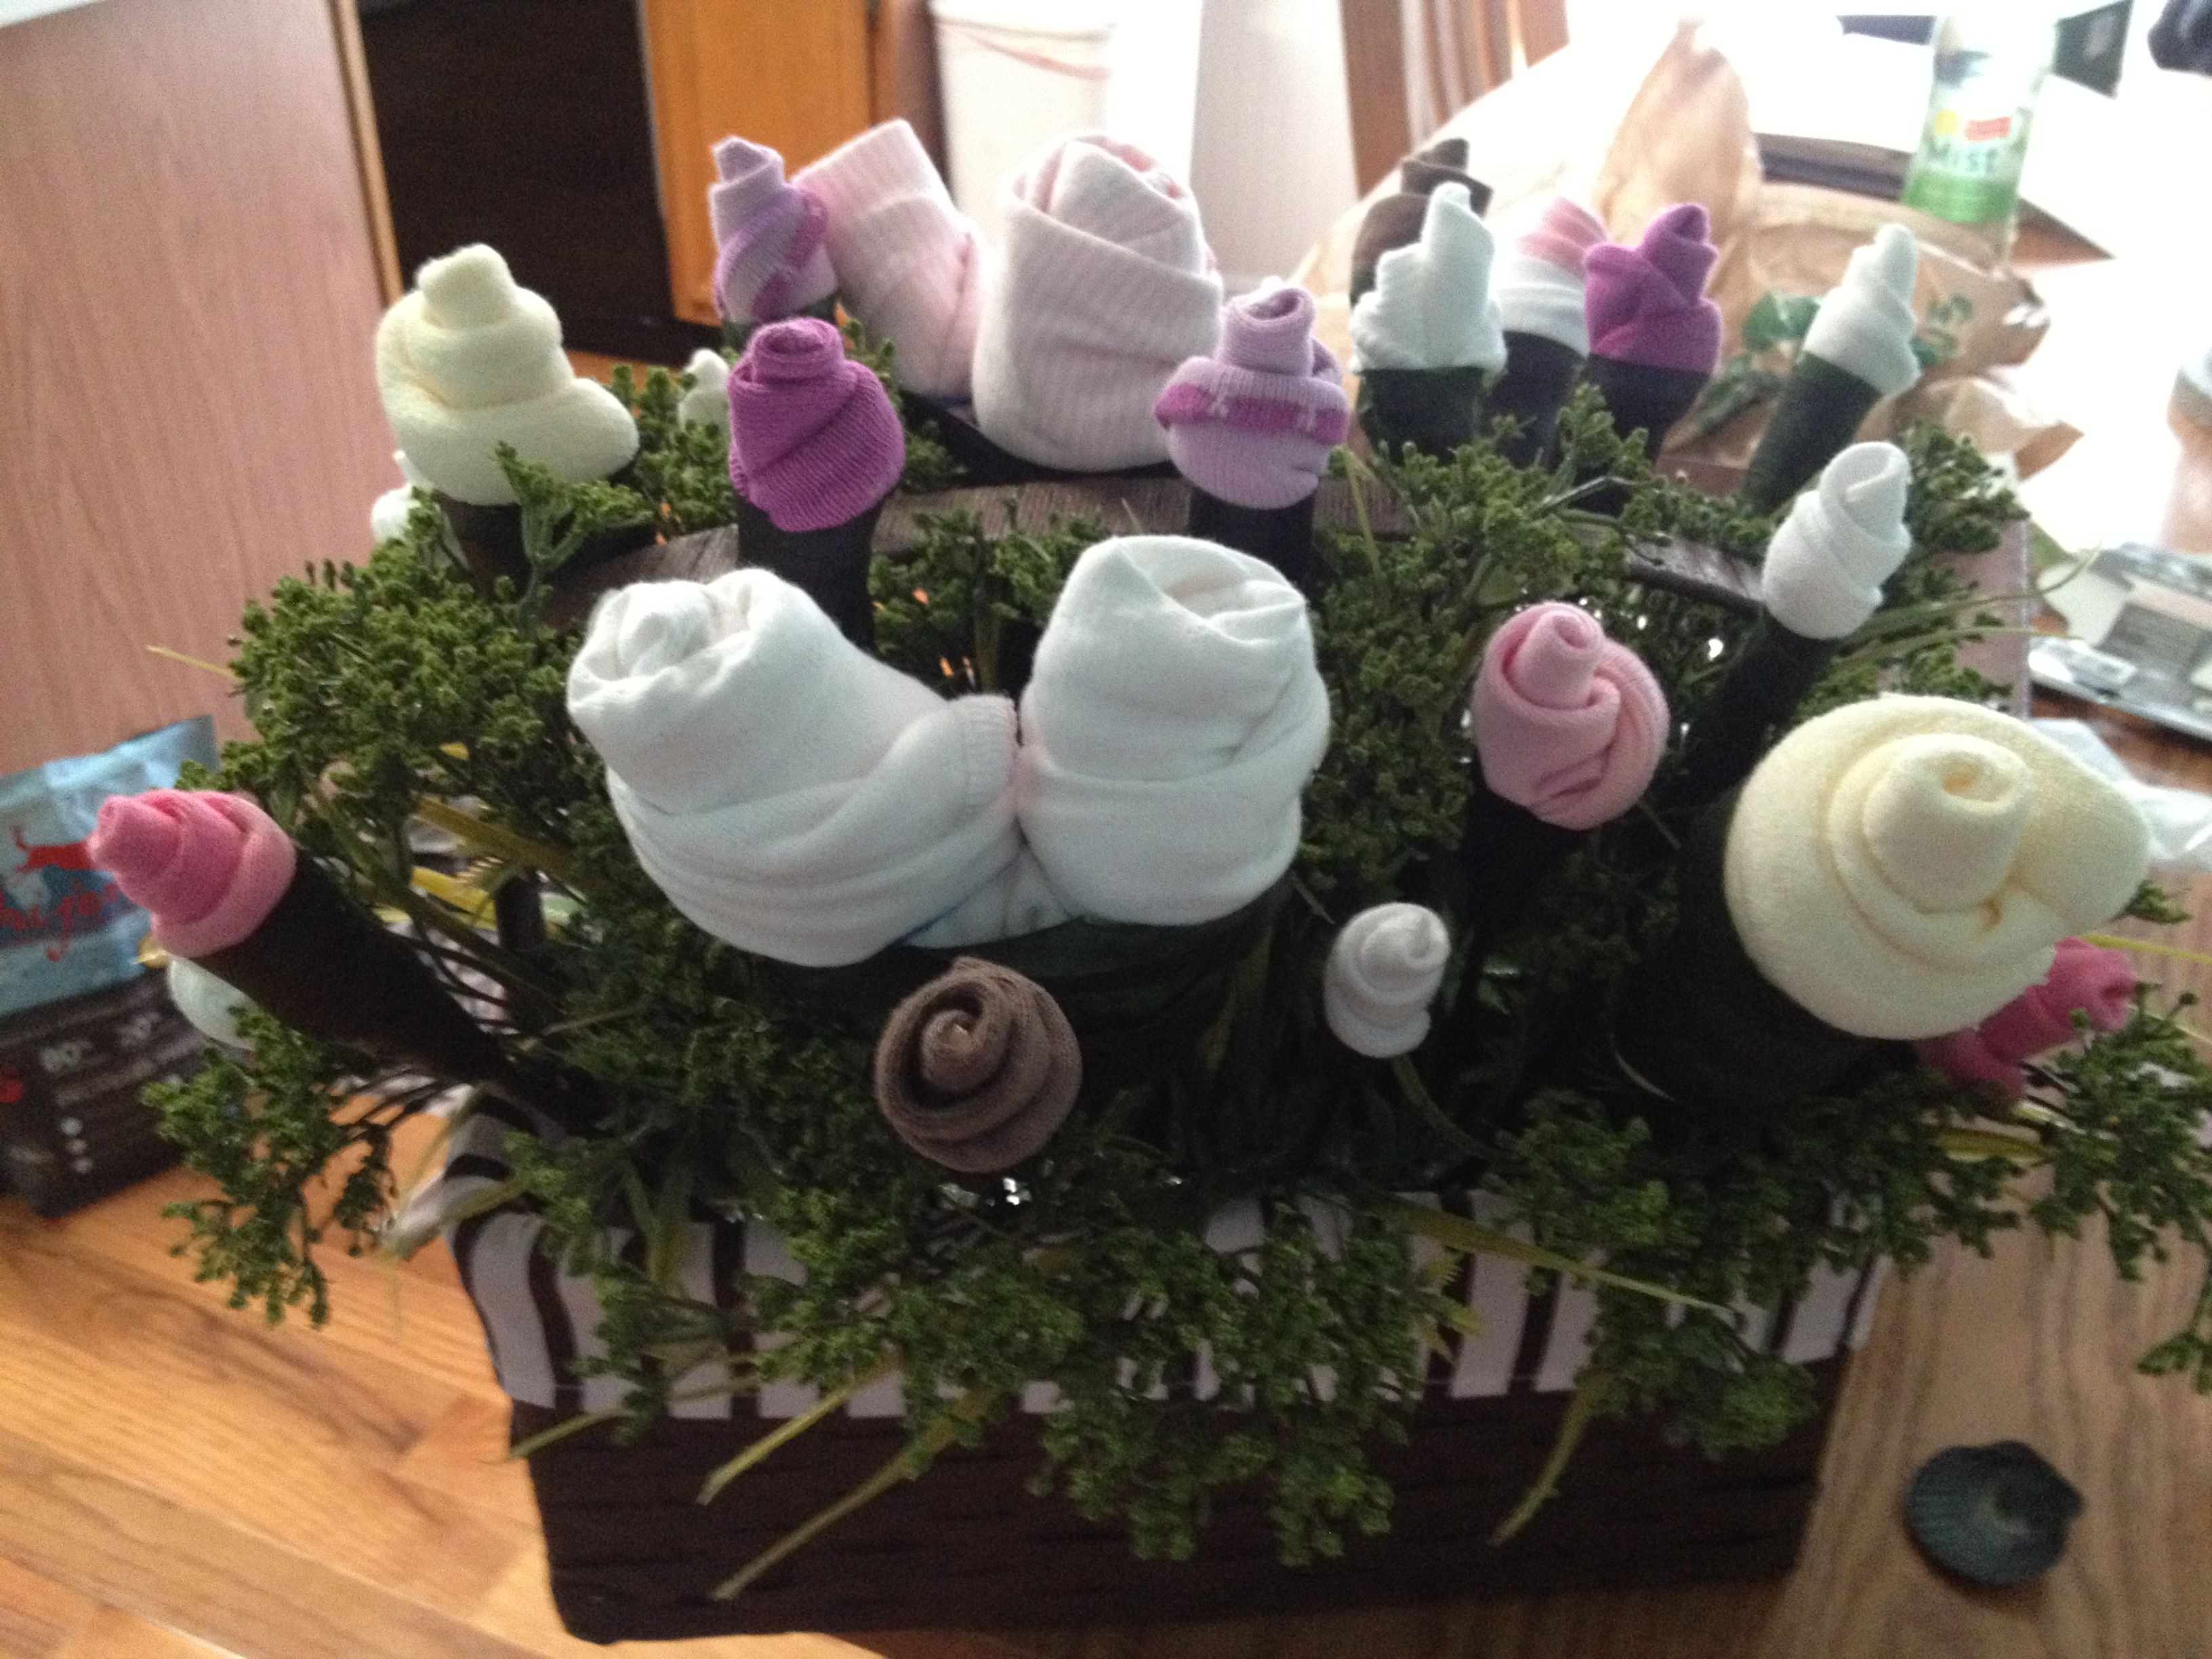 Baby Bouquet Made Out Of Socks Bibs And Gowns I Watched A Martha Stewart Tutorial On How To Make Them It Was SO Easy